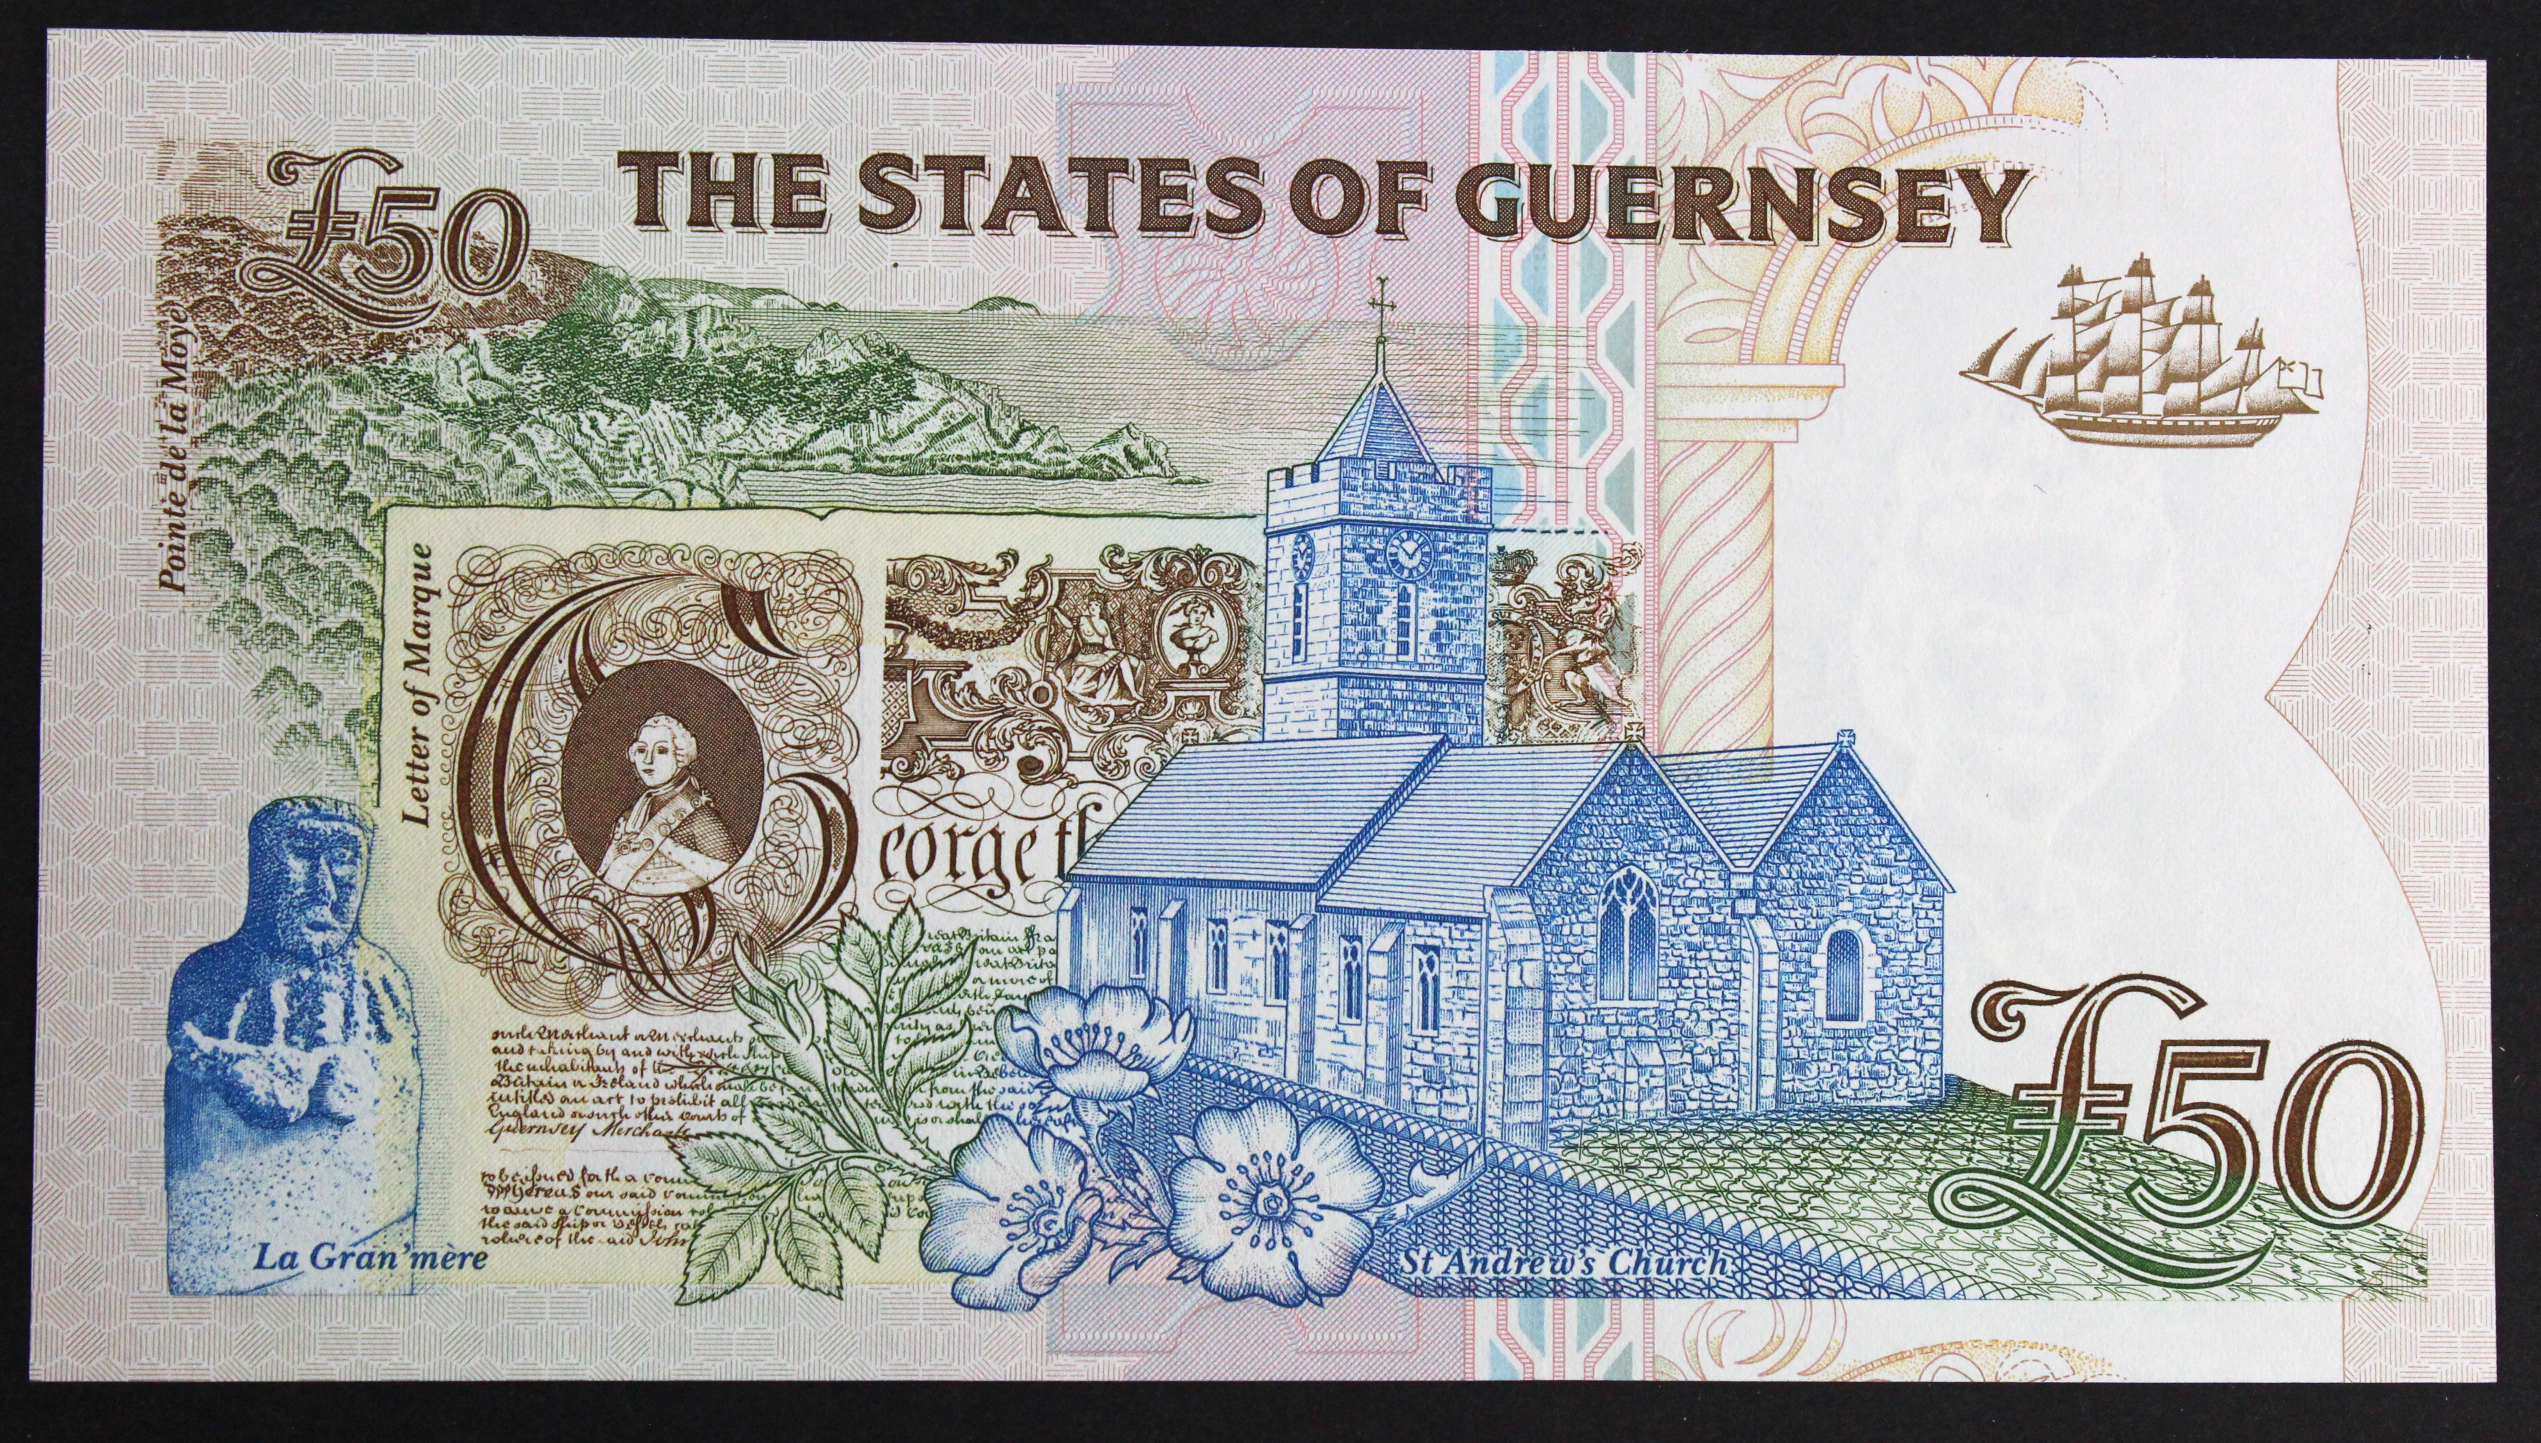 Guernsey 50 Pounds issued 1994, signed D.P. Trestain, serial A036731 (TBB B164a, Pick59) - Image 2 of 2